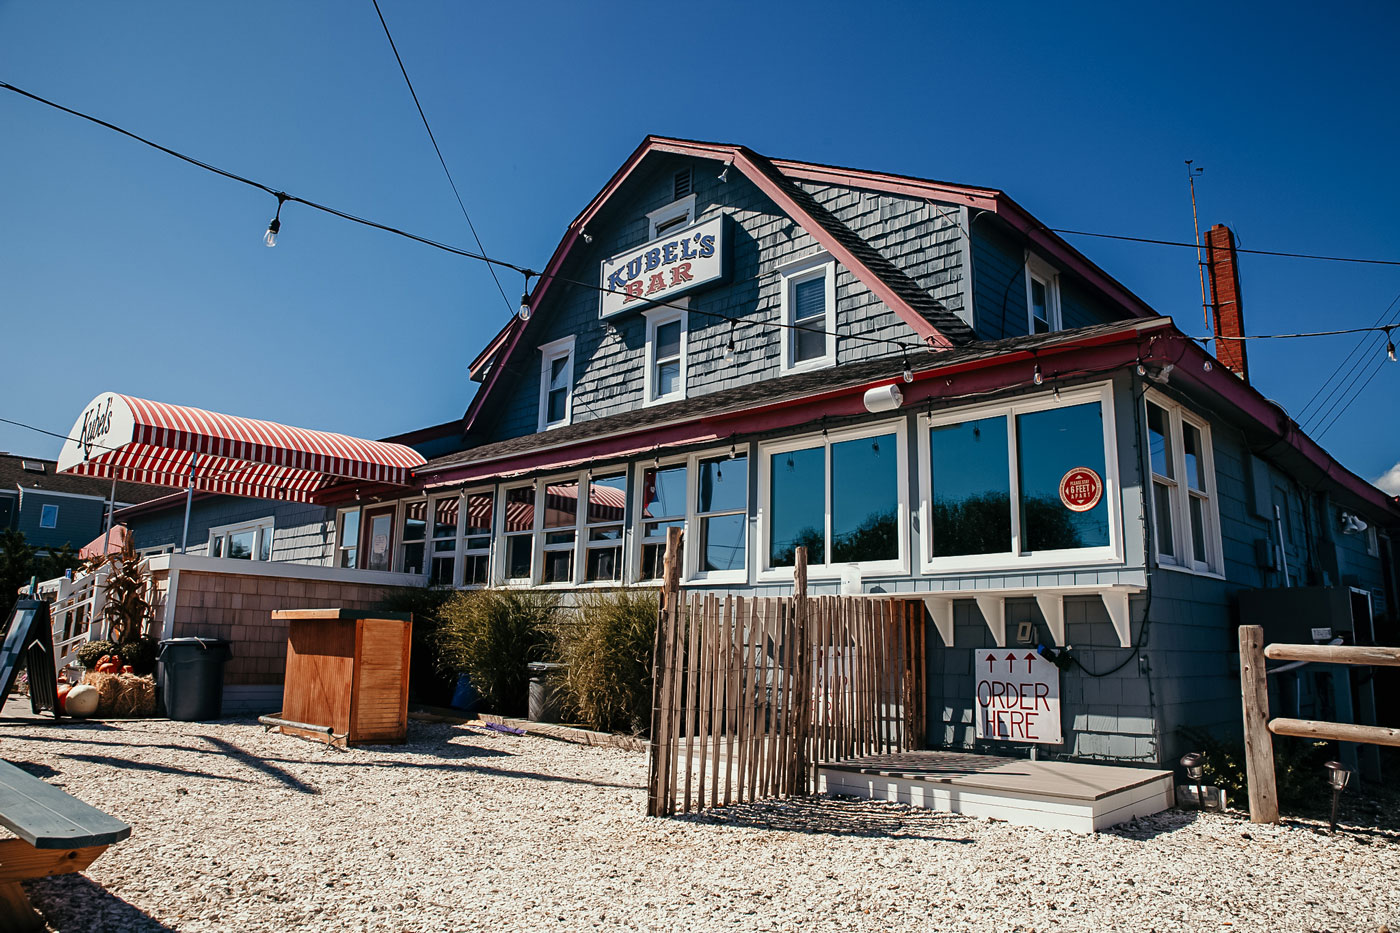 Kubel's Bar in Barnegat Light on Long Beach Island.